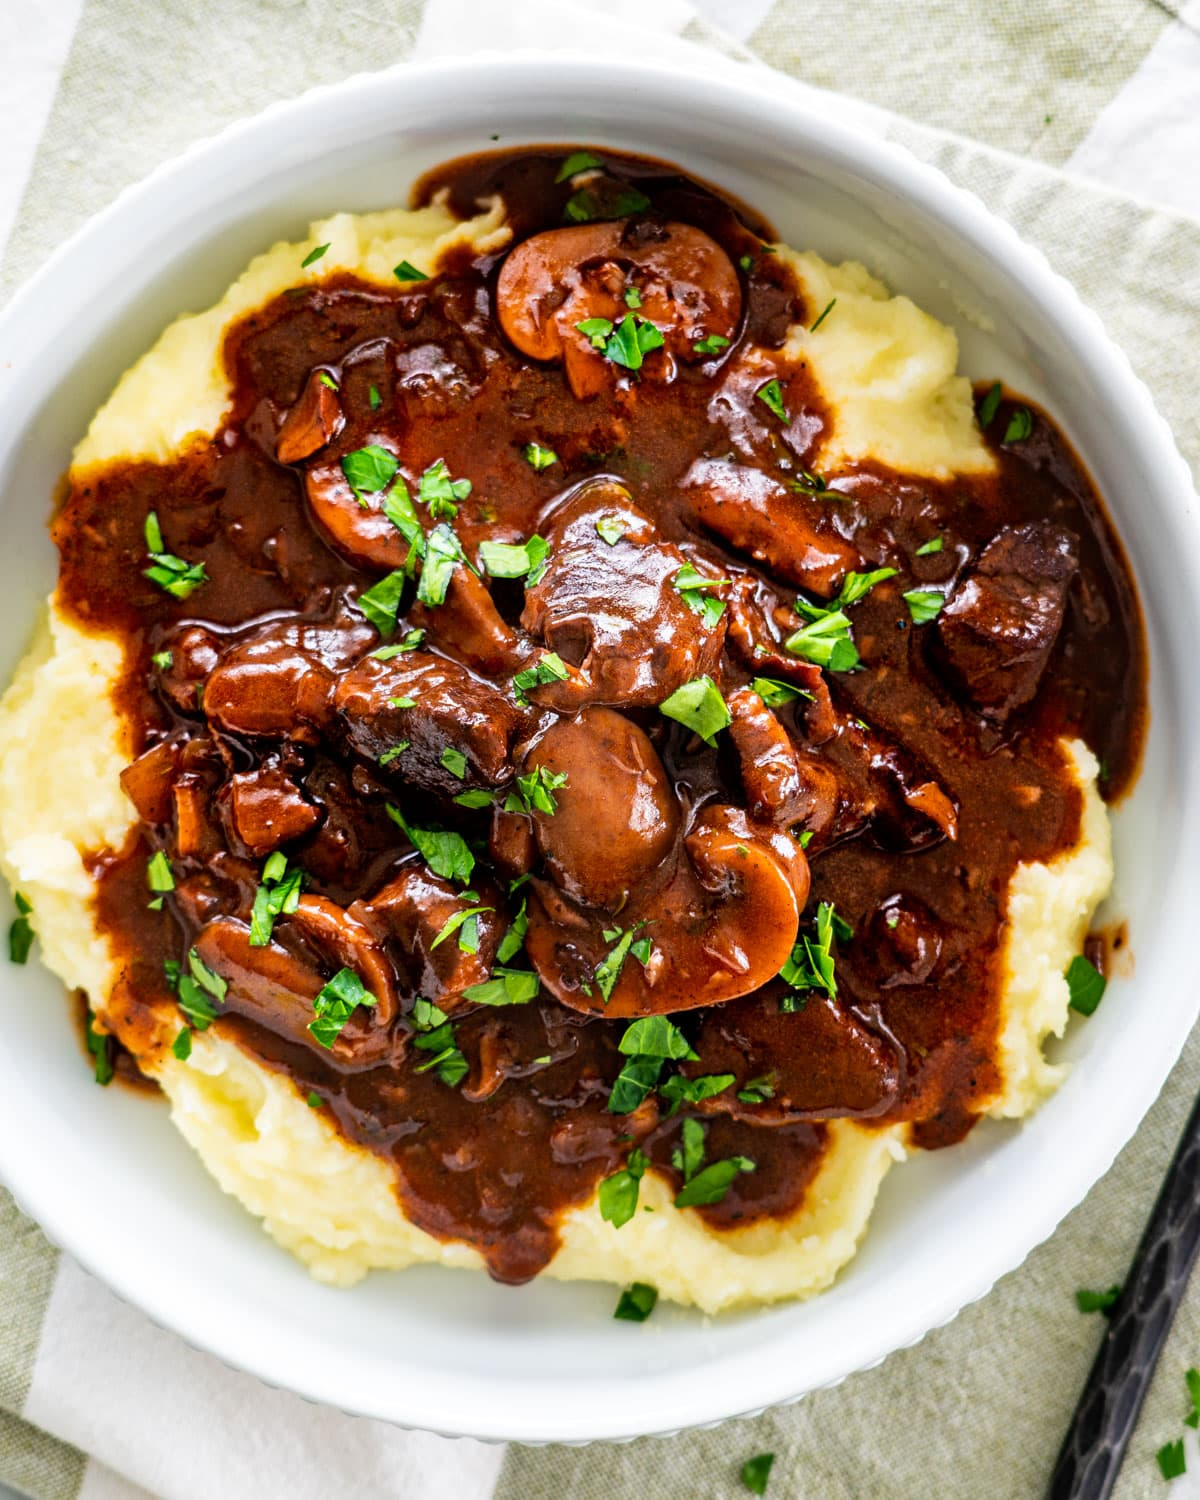 overhead shot of beef burgundy over a bed of mashed potatoes garnished with parsley in a white plate